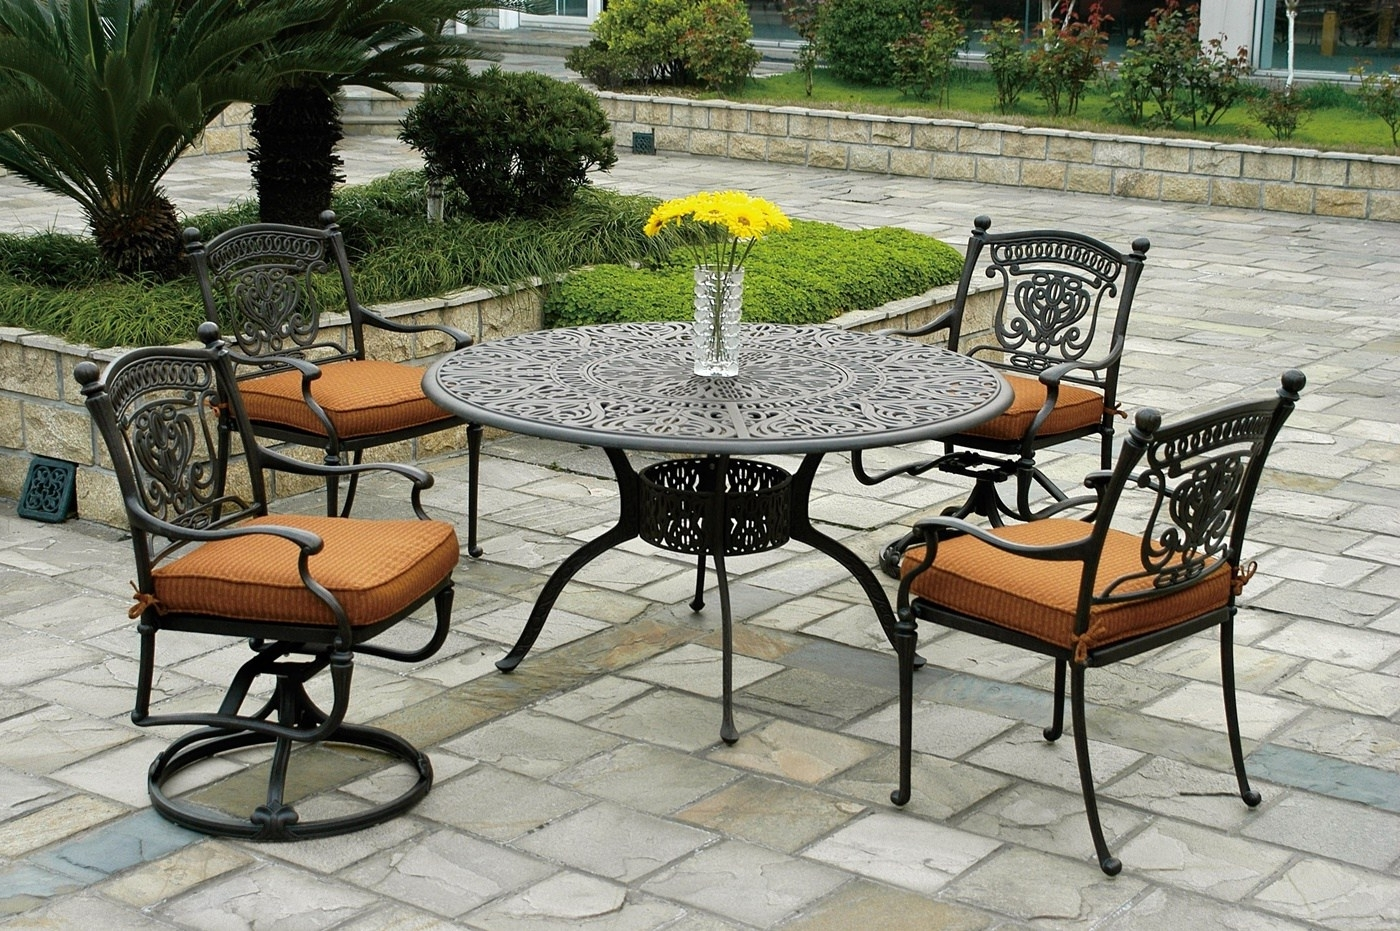 Patio Furniture Sets With Umbrellas Regarding Popular Gray Outdoor Table With Large Size With Chairs Small (View 15 of 20)